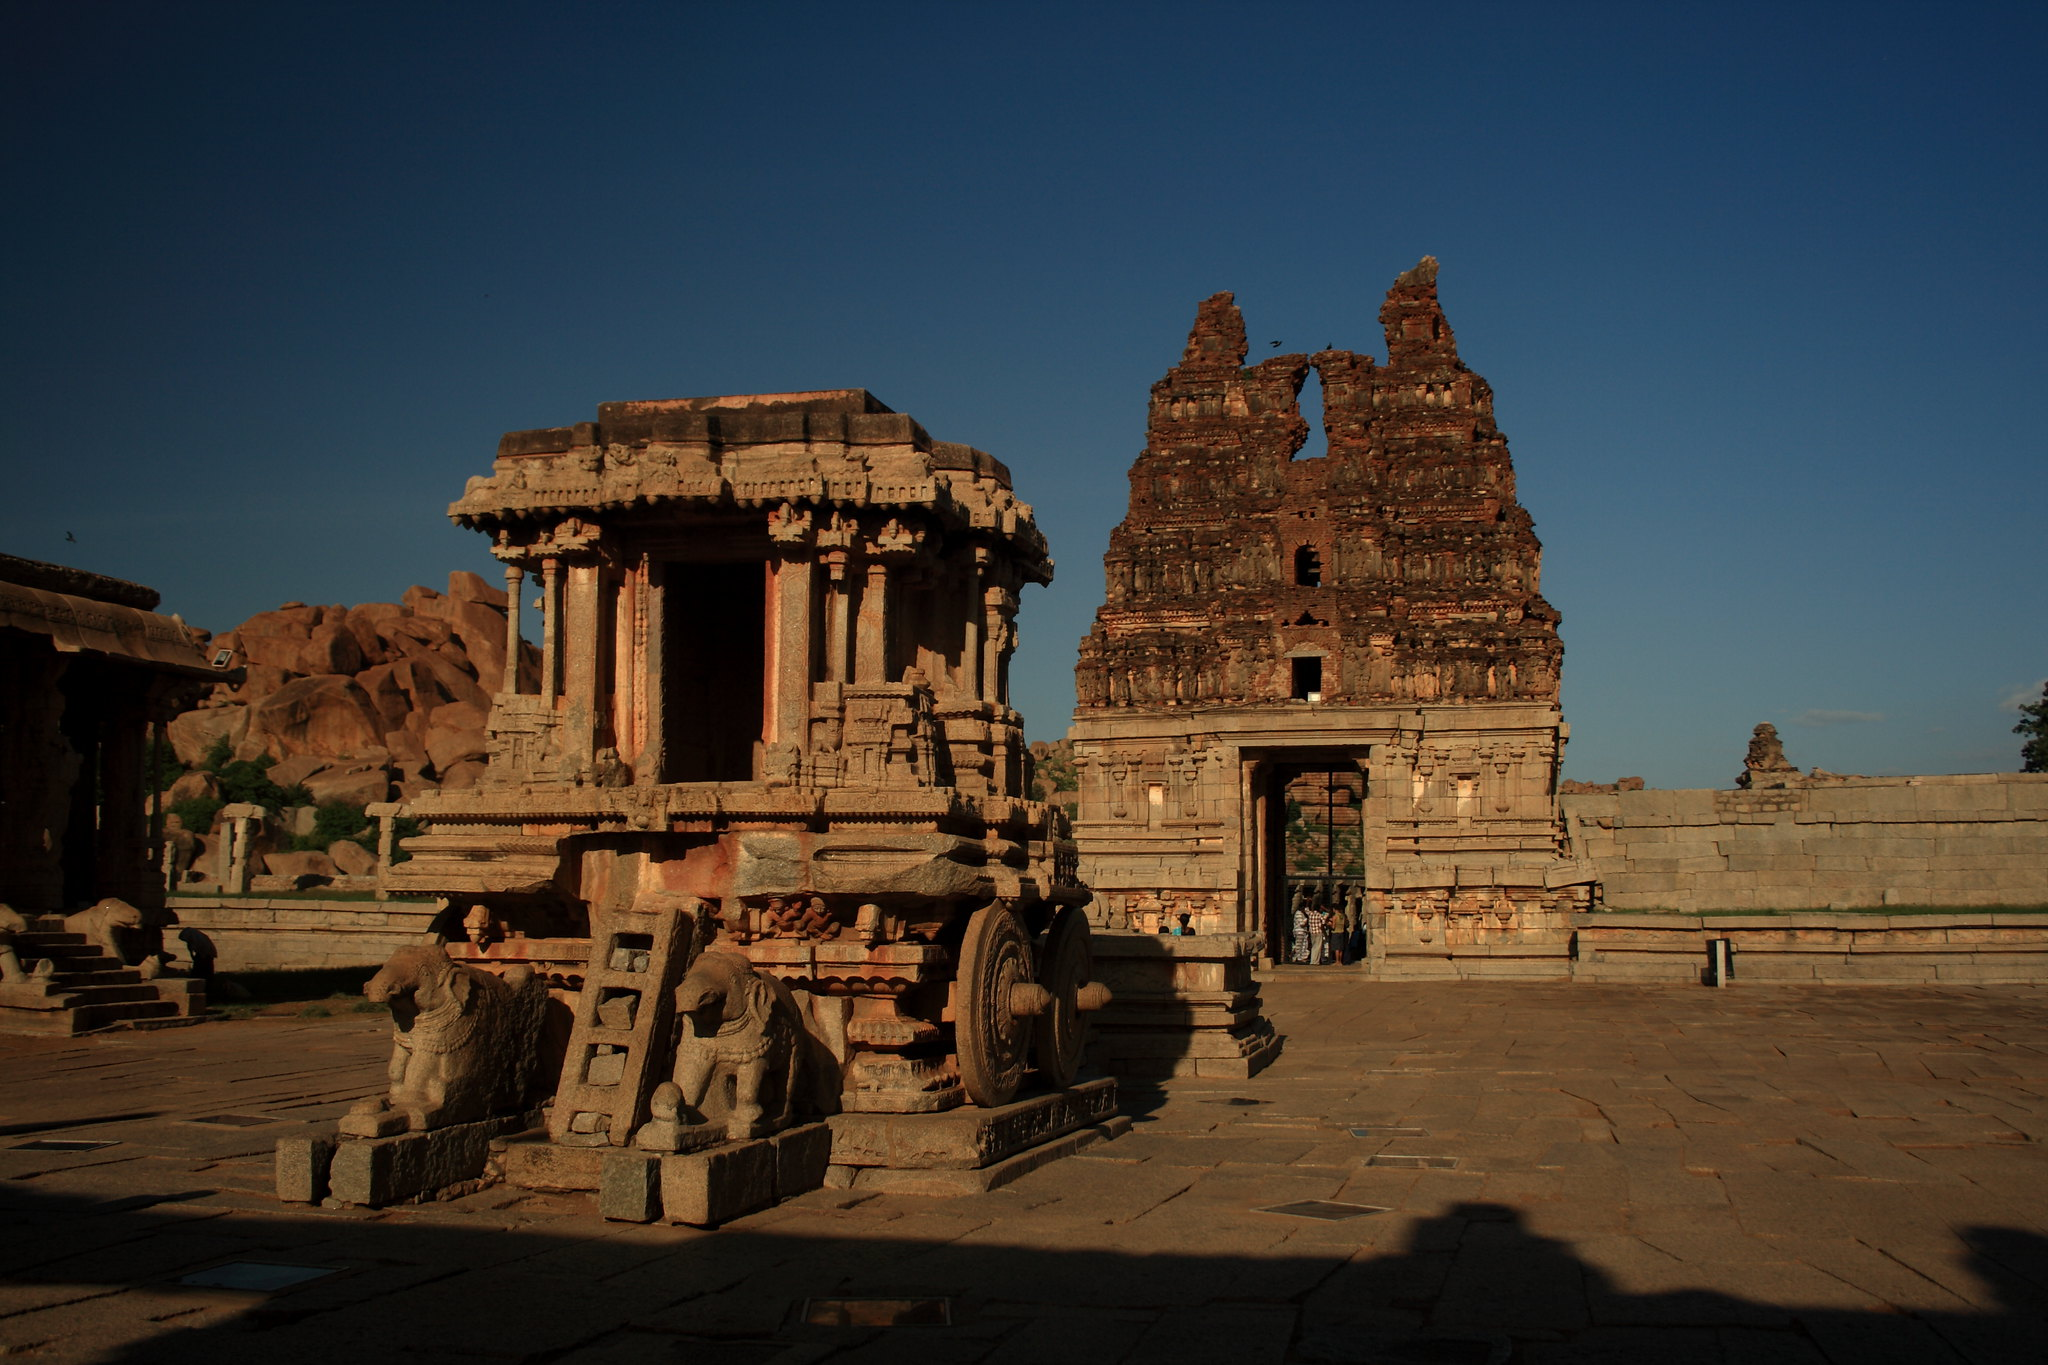 The Stone Chariot of Hampi By Suman Munshi